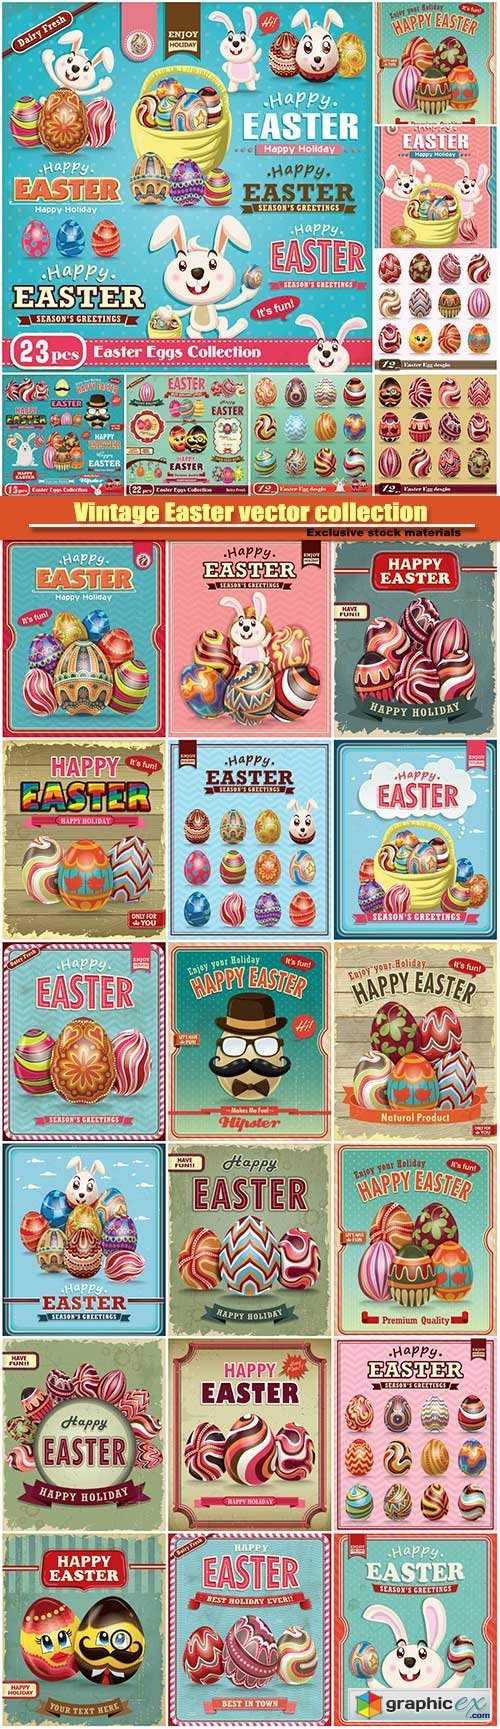 Vintage Easter vector collection